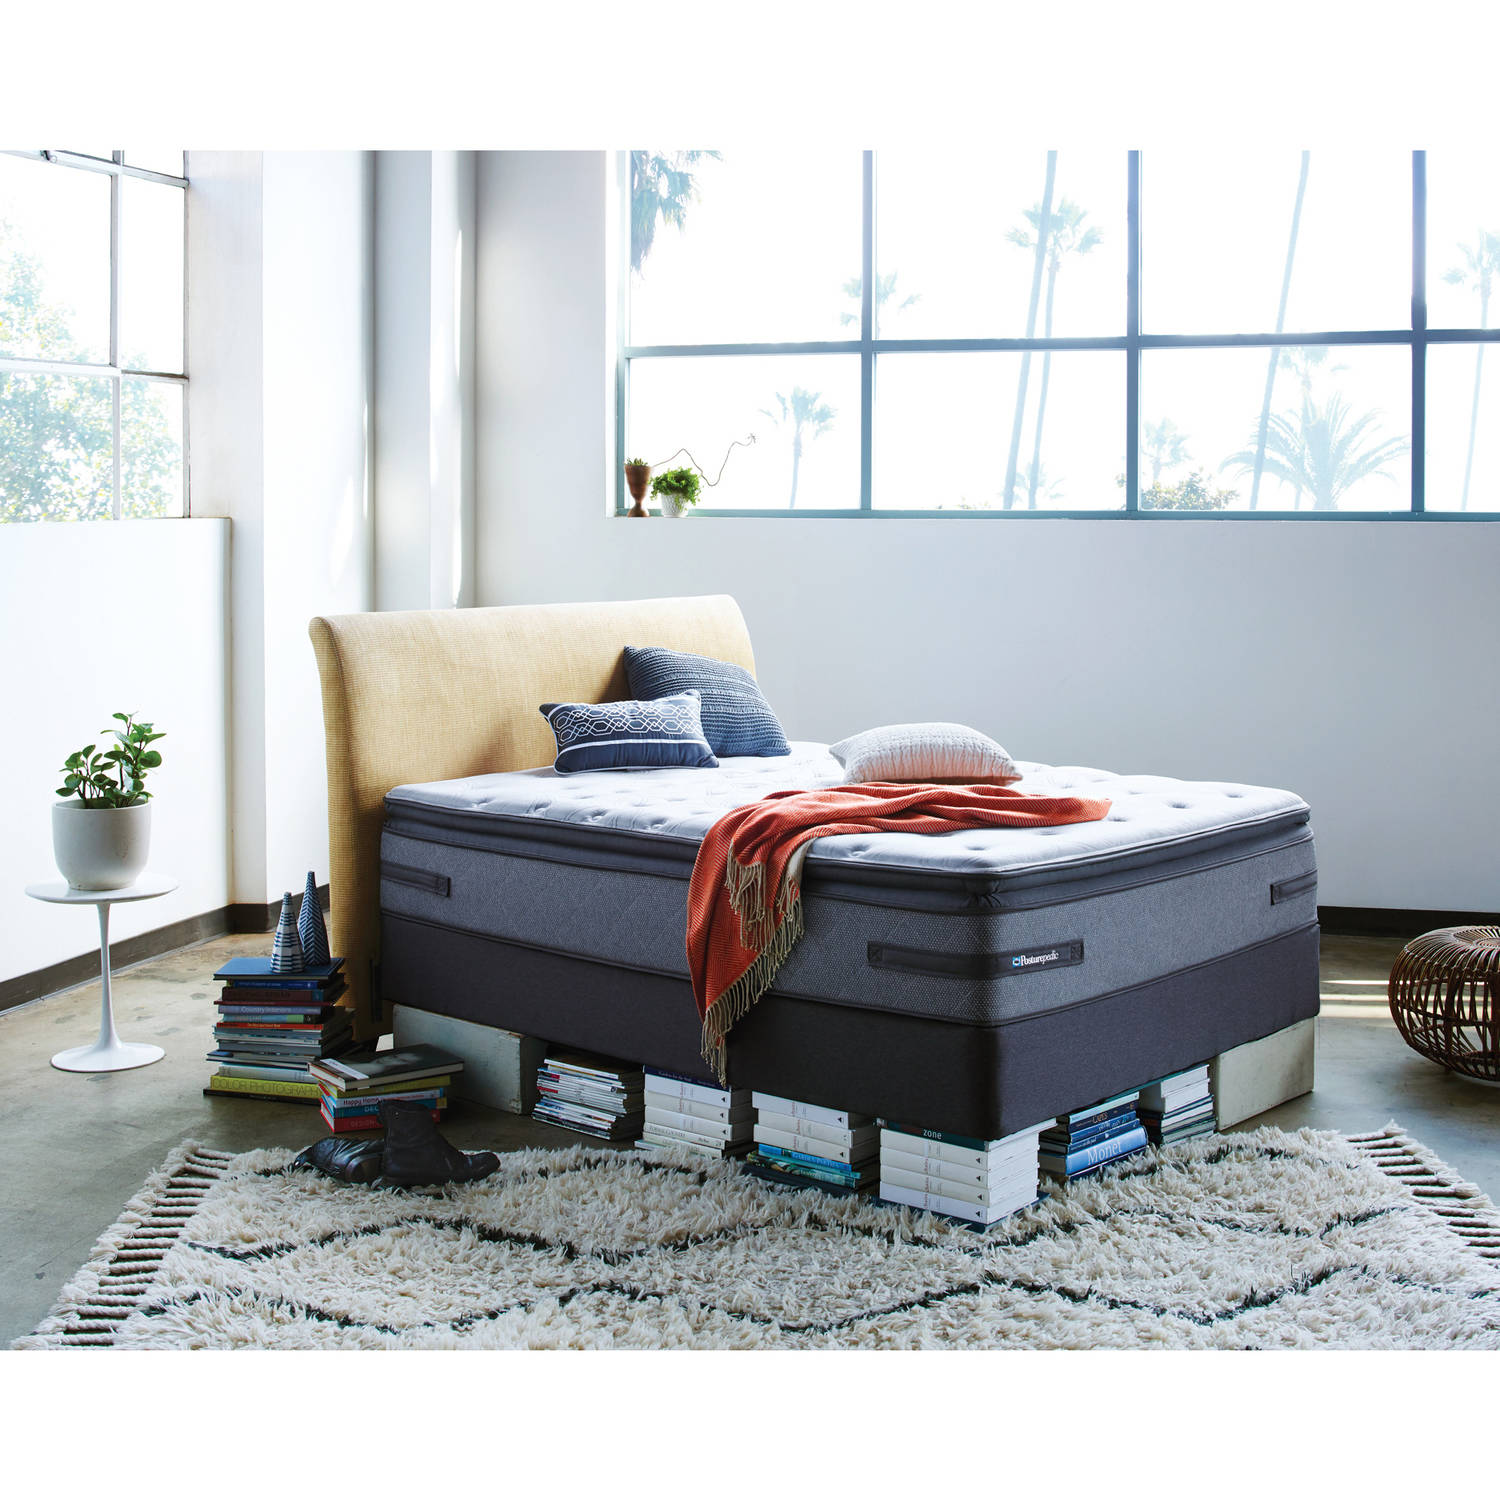 Sealy Posturepedic San Benito Plush Euro Pillowtop Mattress, Multiple Sizes by Sealy